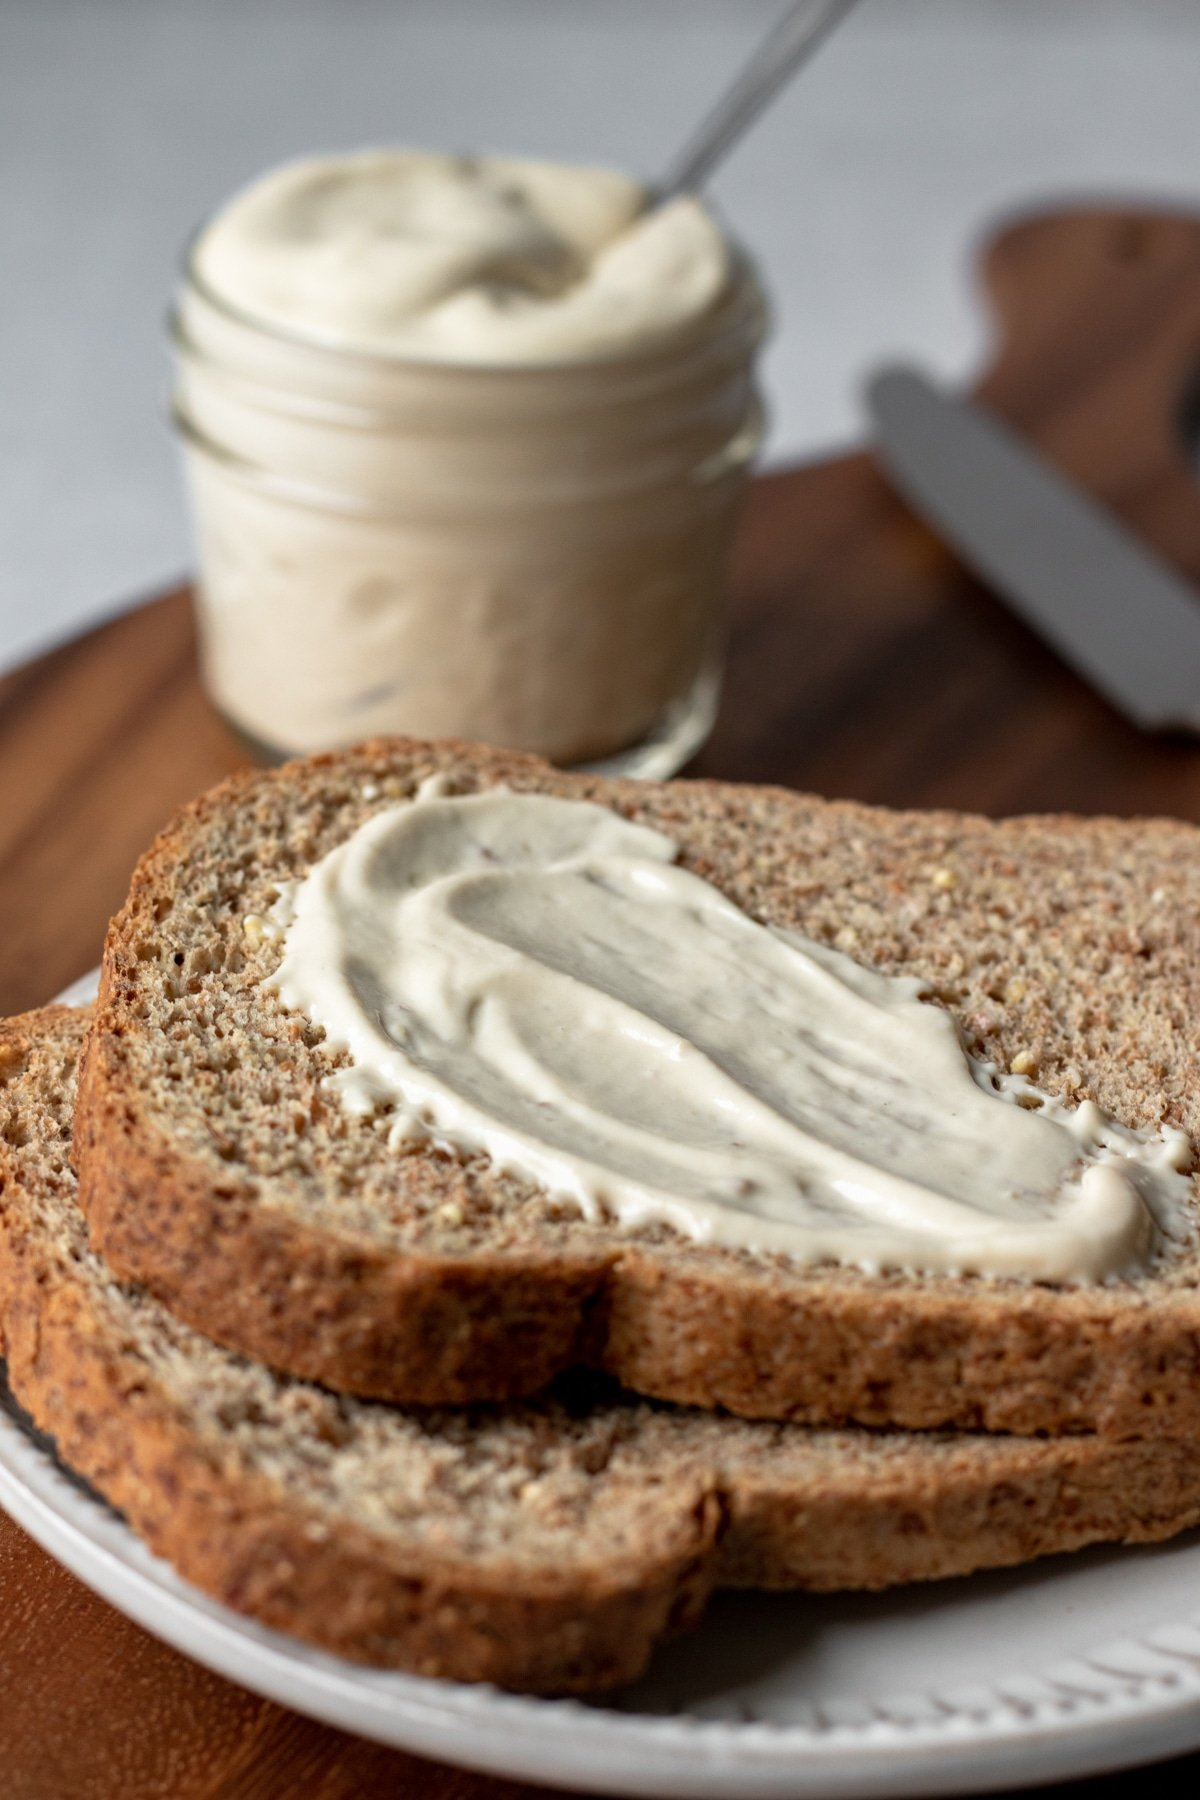 aquafaba mayo spread on a piece of toasted bread